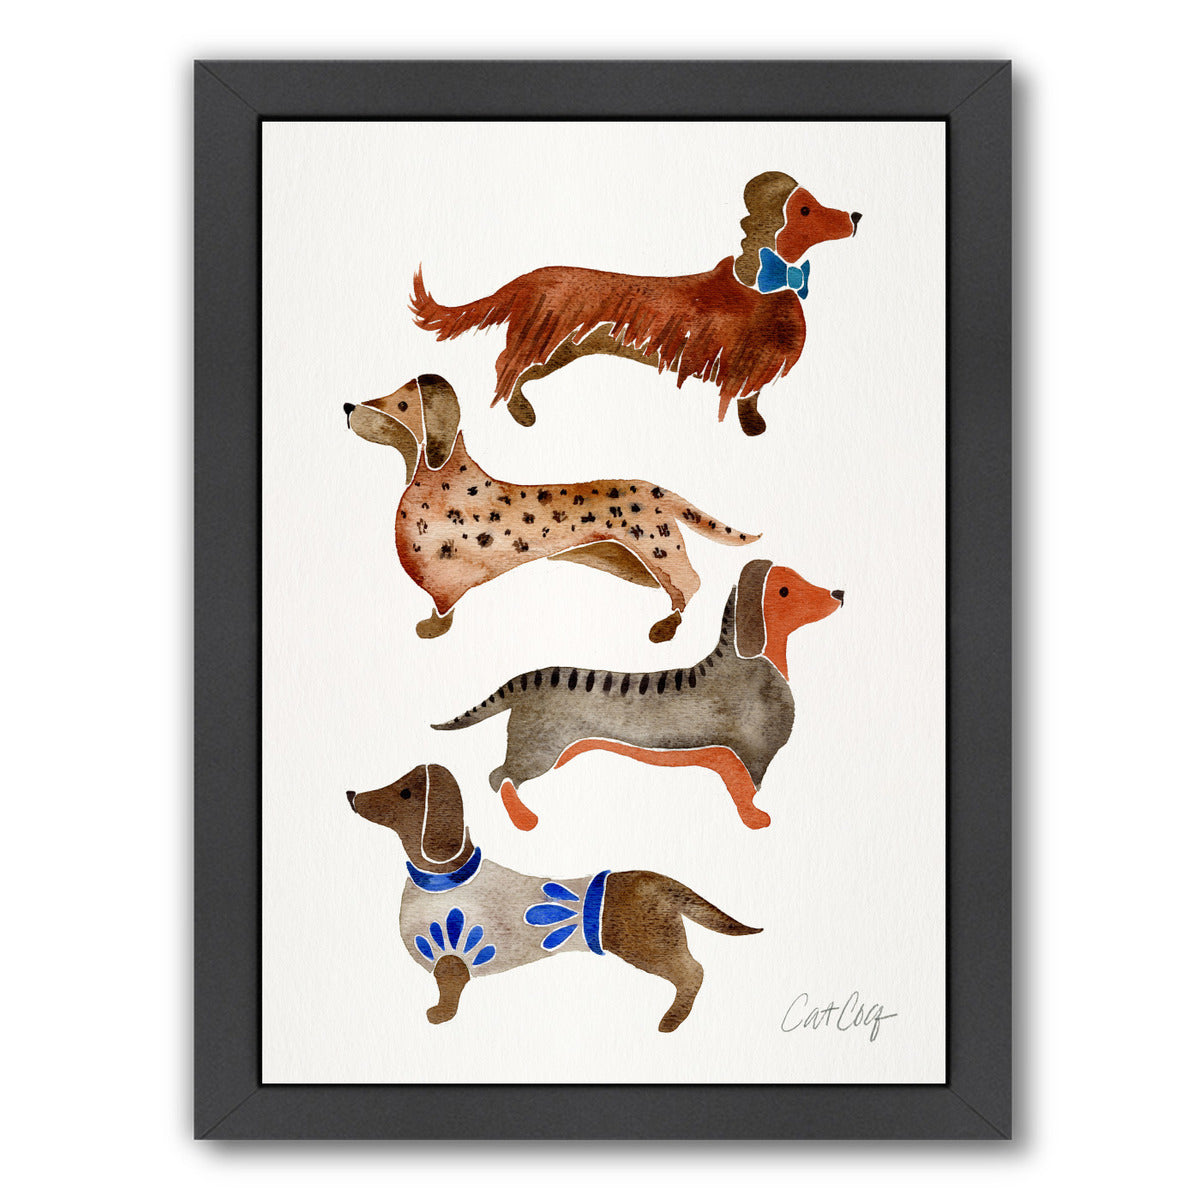 Dachshunds by Cat Coquillette Framed Print - Americanflat